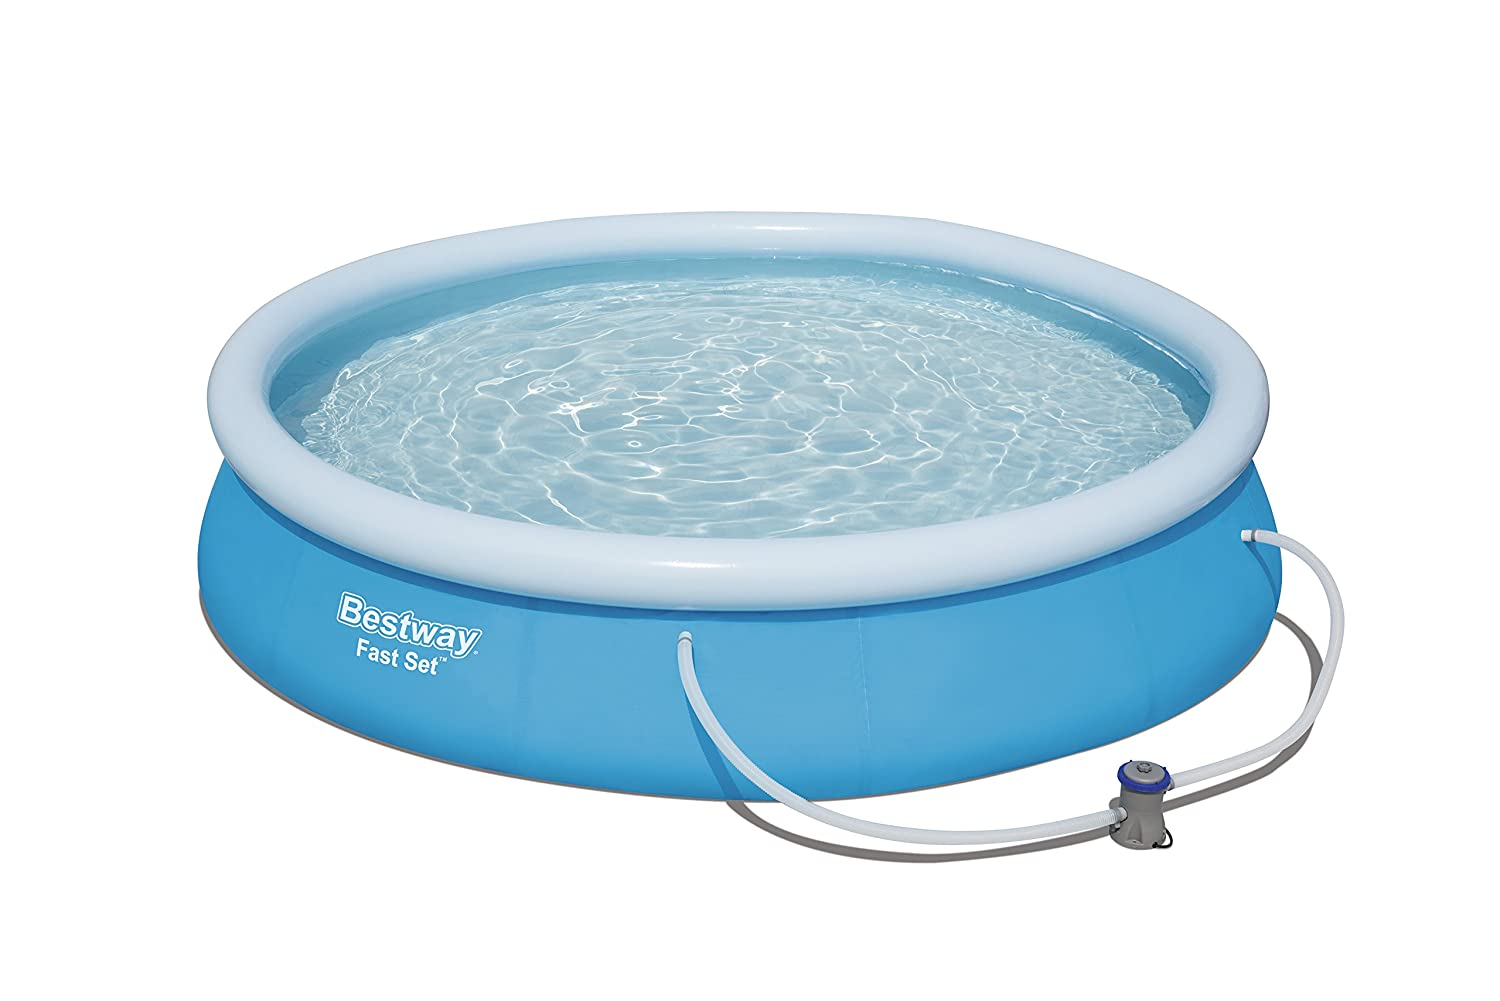 Bestway Fast Set Piscina Desmontable Autoportante, 150x38x75 cm: Amazon.es: Jardín